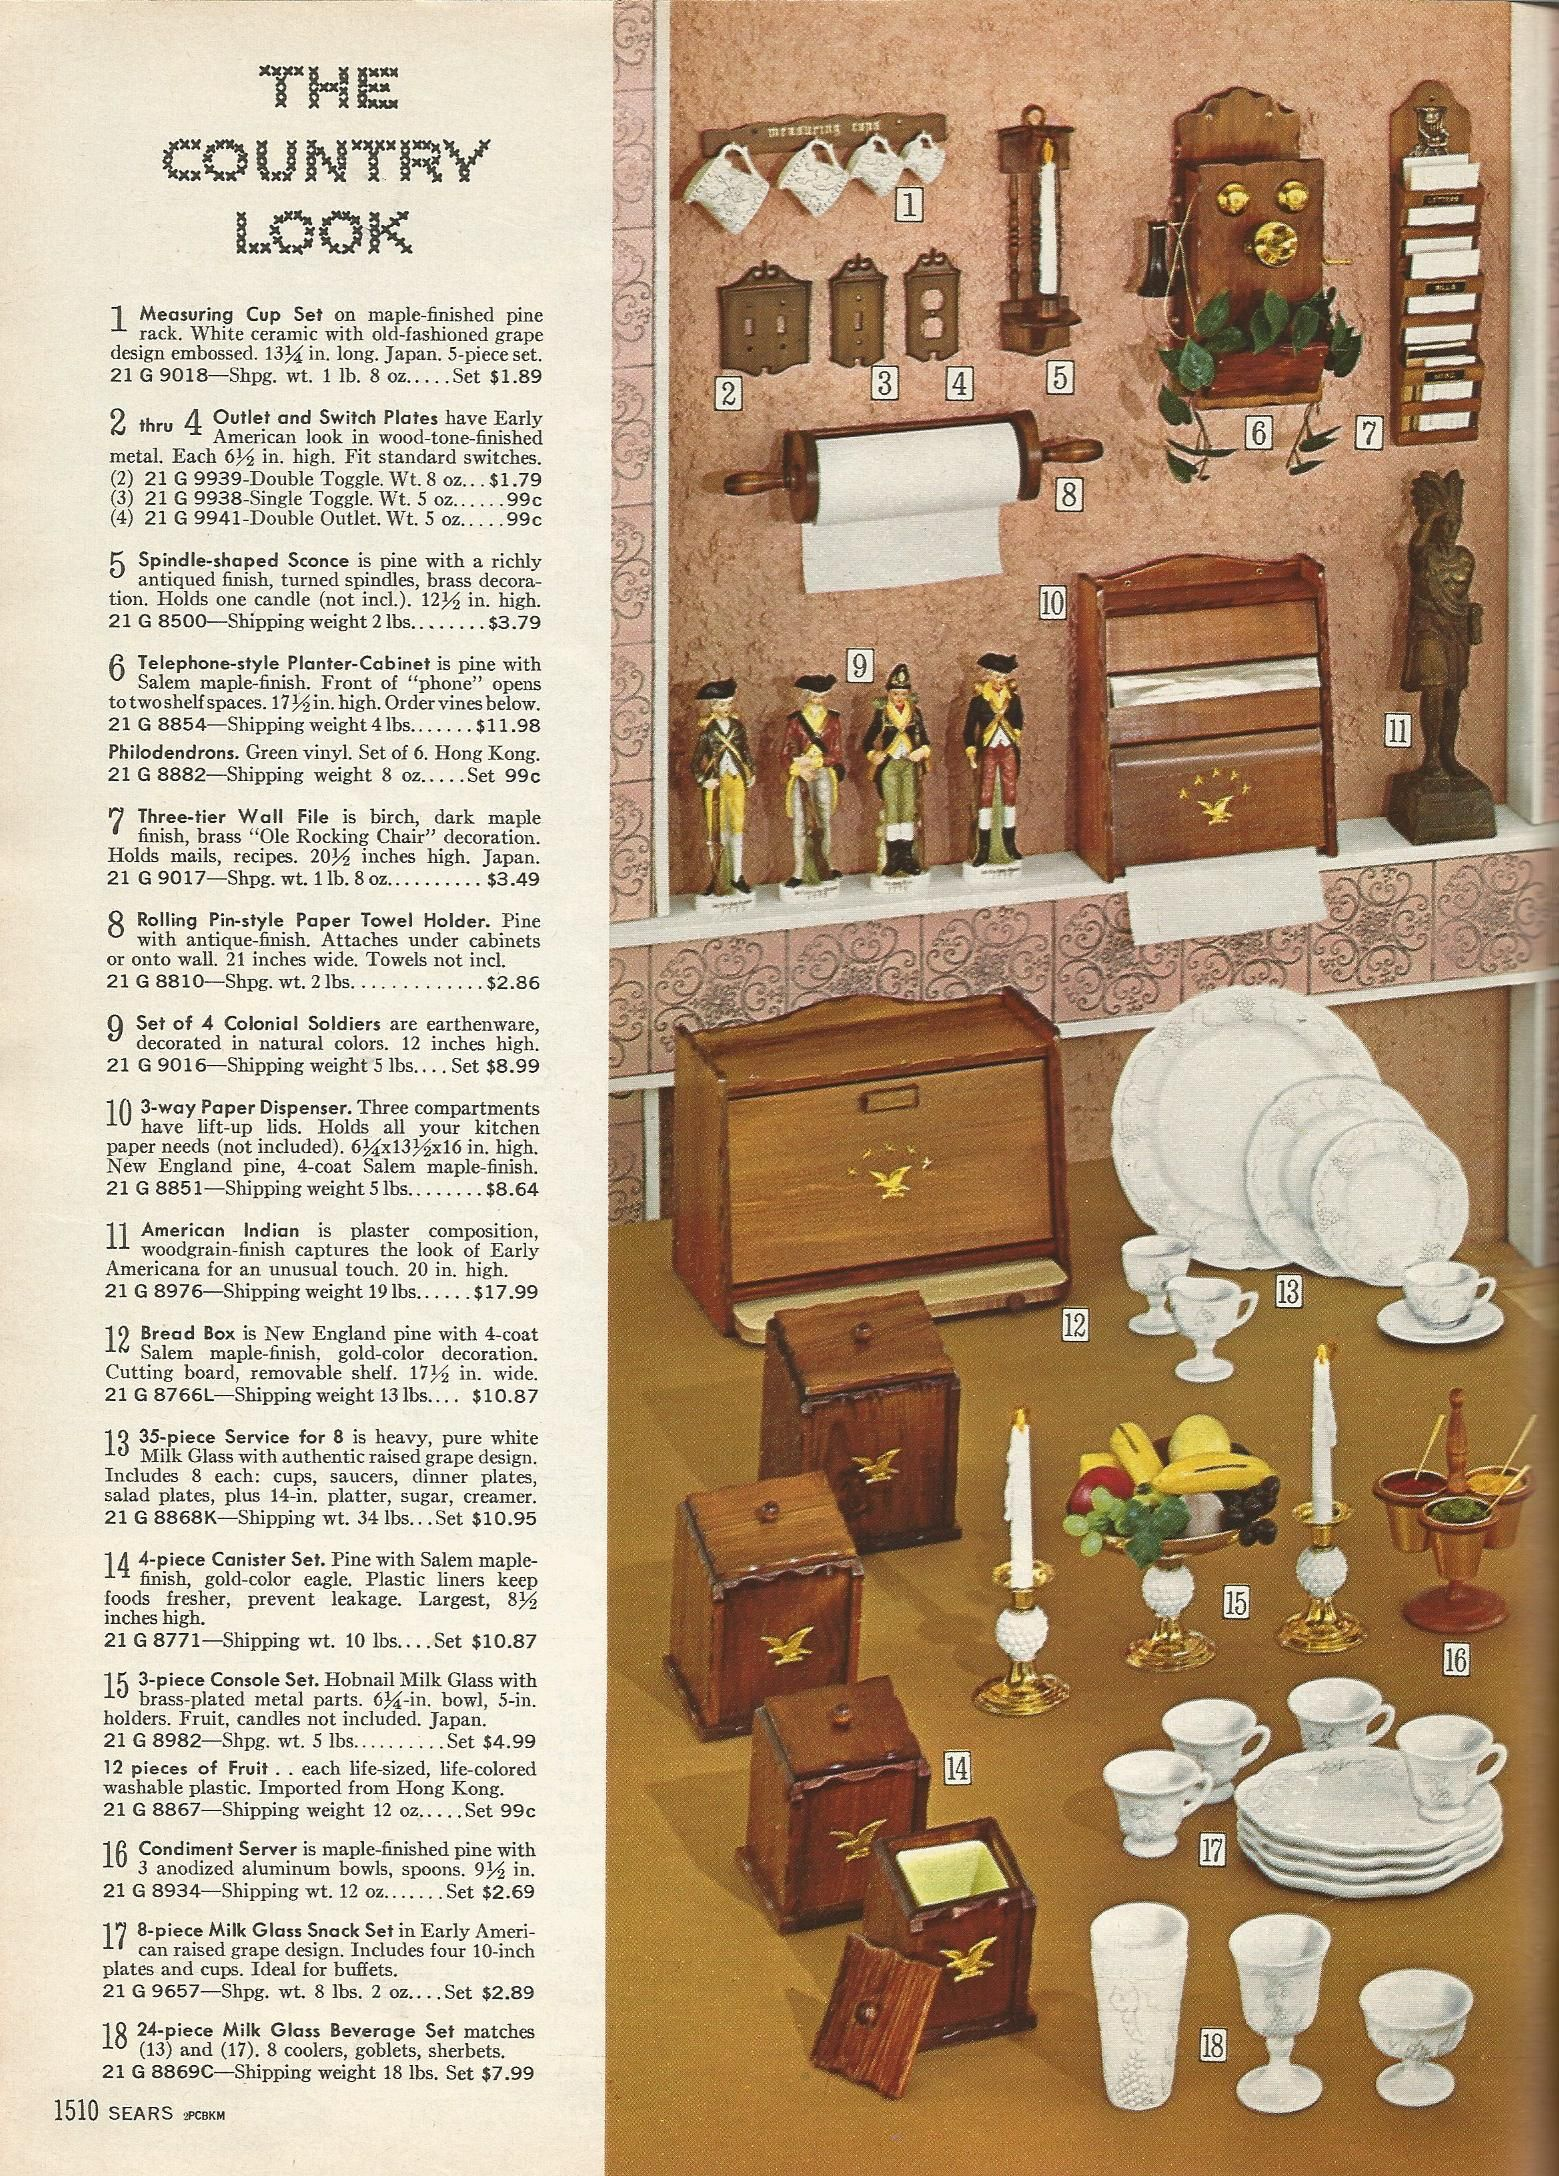 1965 House Decor Vintage Home Decorating 1960s Wall Decor And Accents Posted On